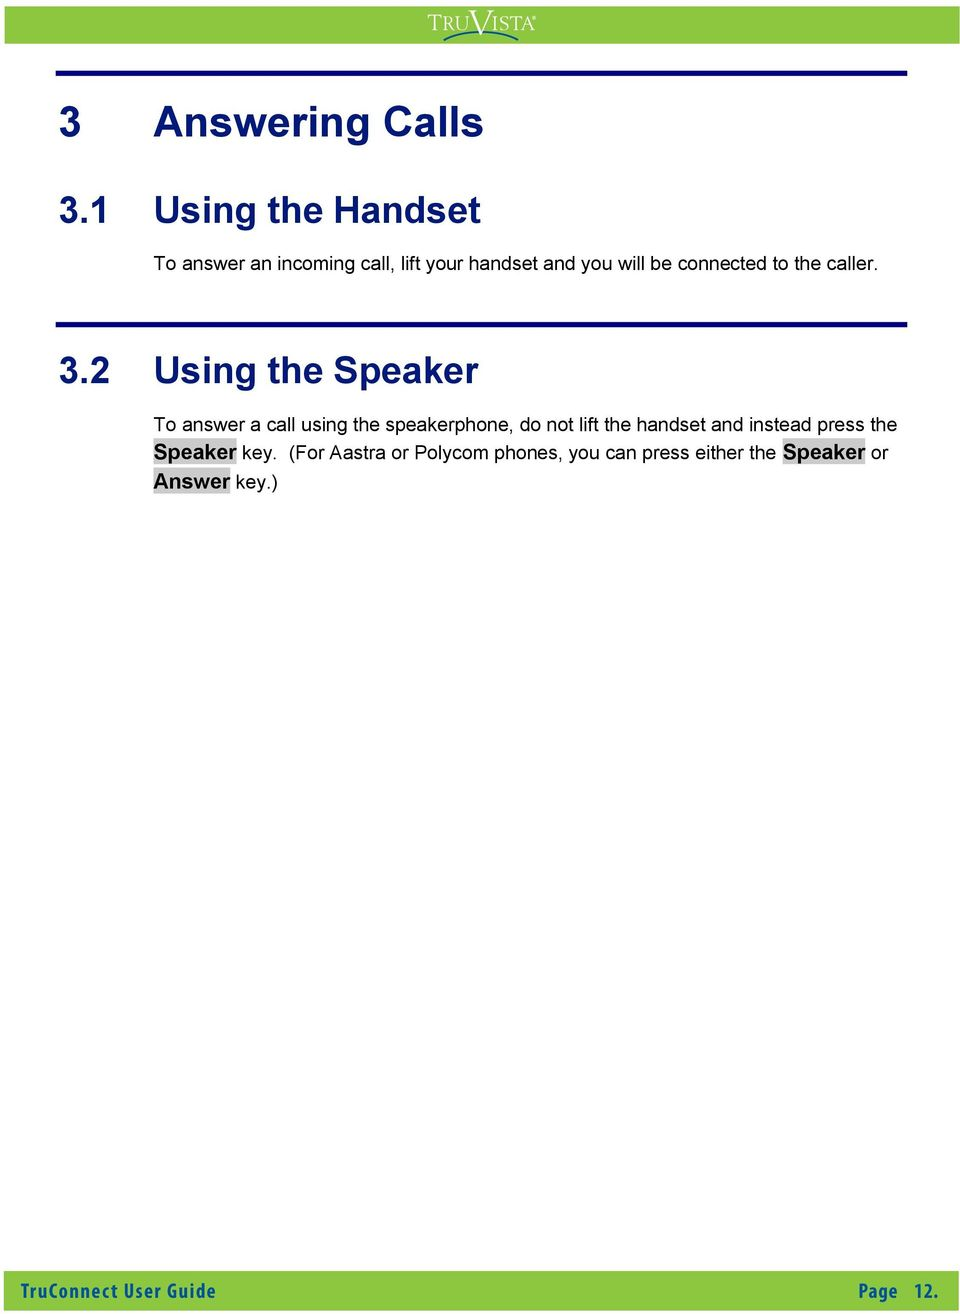 2 Using the Speaker To answer a call using the speakerphone, do not lift the handset and instead press the Speaker